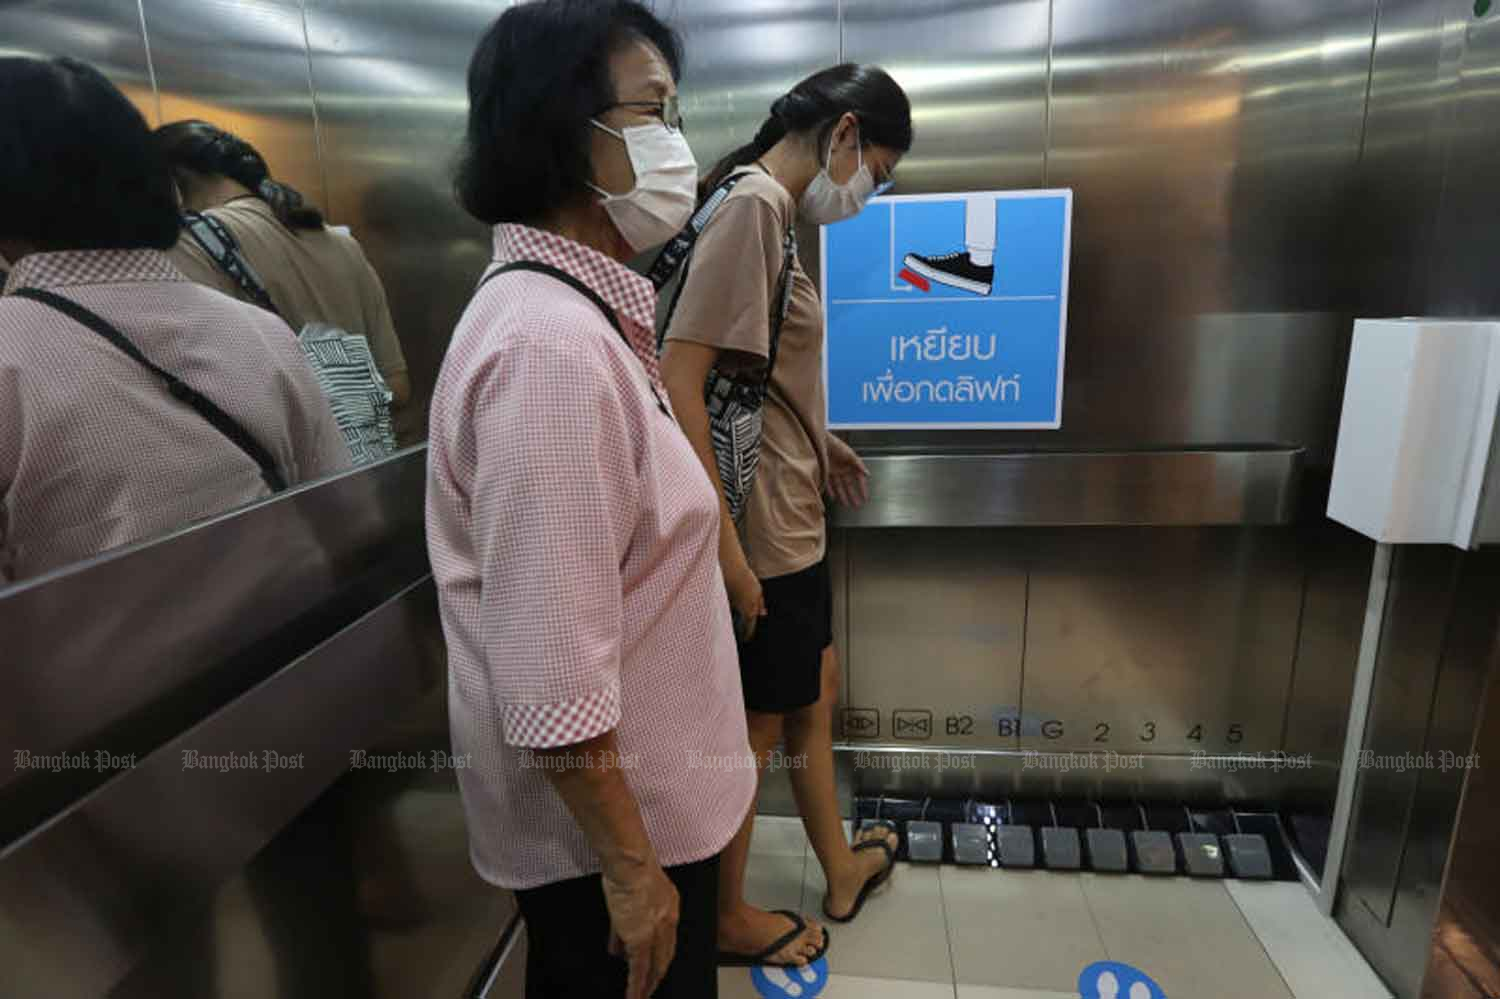 The new norm: A visitor to Seacon Square shopping centre in Bangkok uses foot pedals to activate an elevator, installed so people can avoid touching buttons their fingers, as a disease control measure. (Photo by Wichan Charoenkiatpakul)